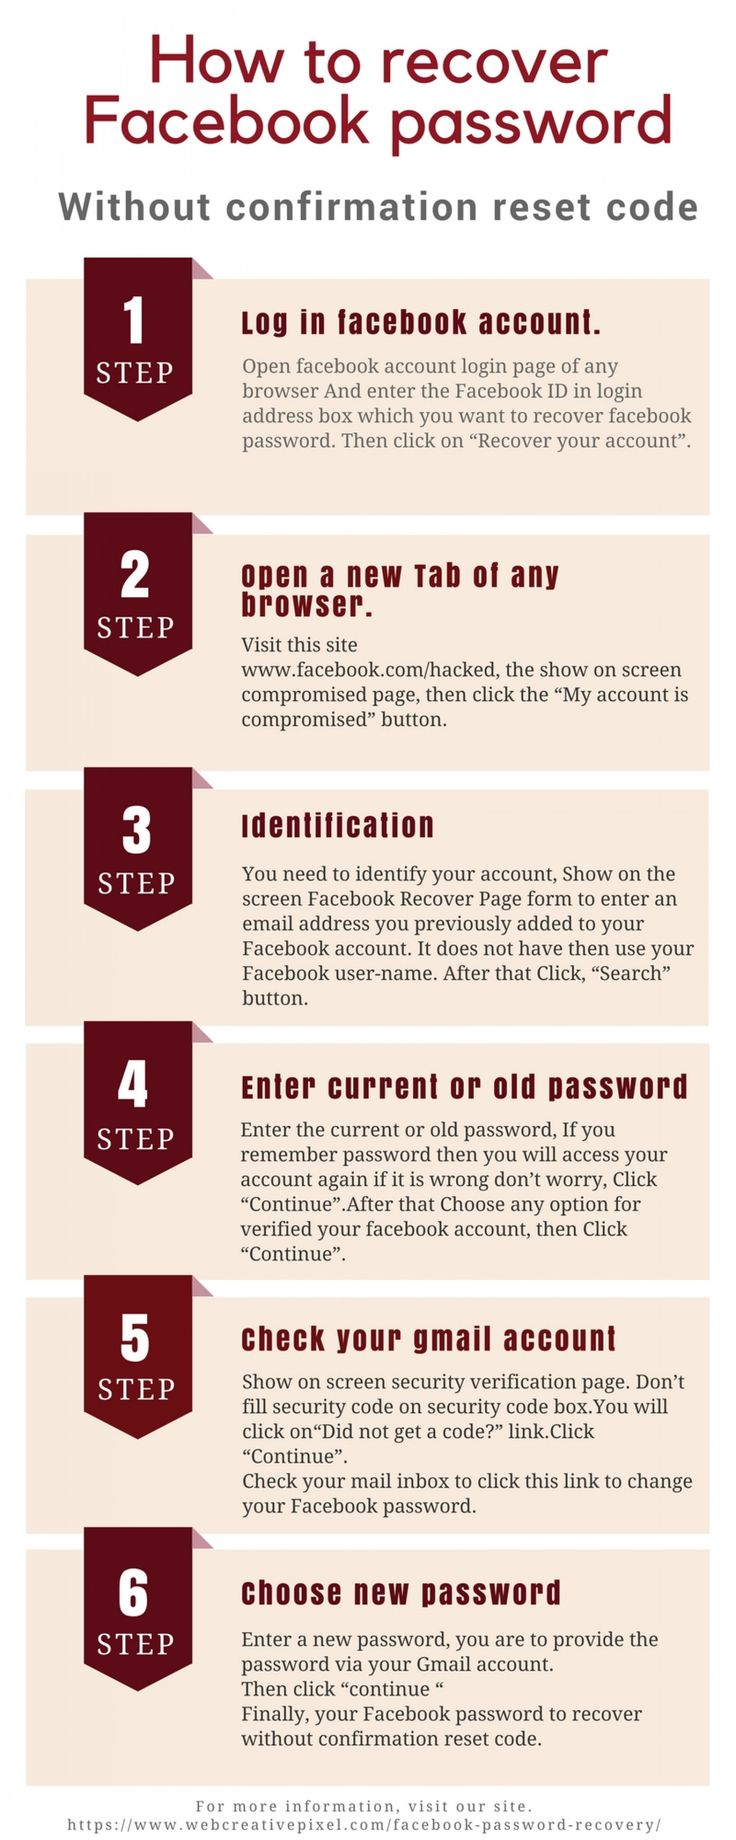 Park Art My WordPress Blog_How Can I Recover My Facebook Password Without Confirmation Reset Code 2019